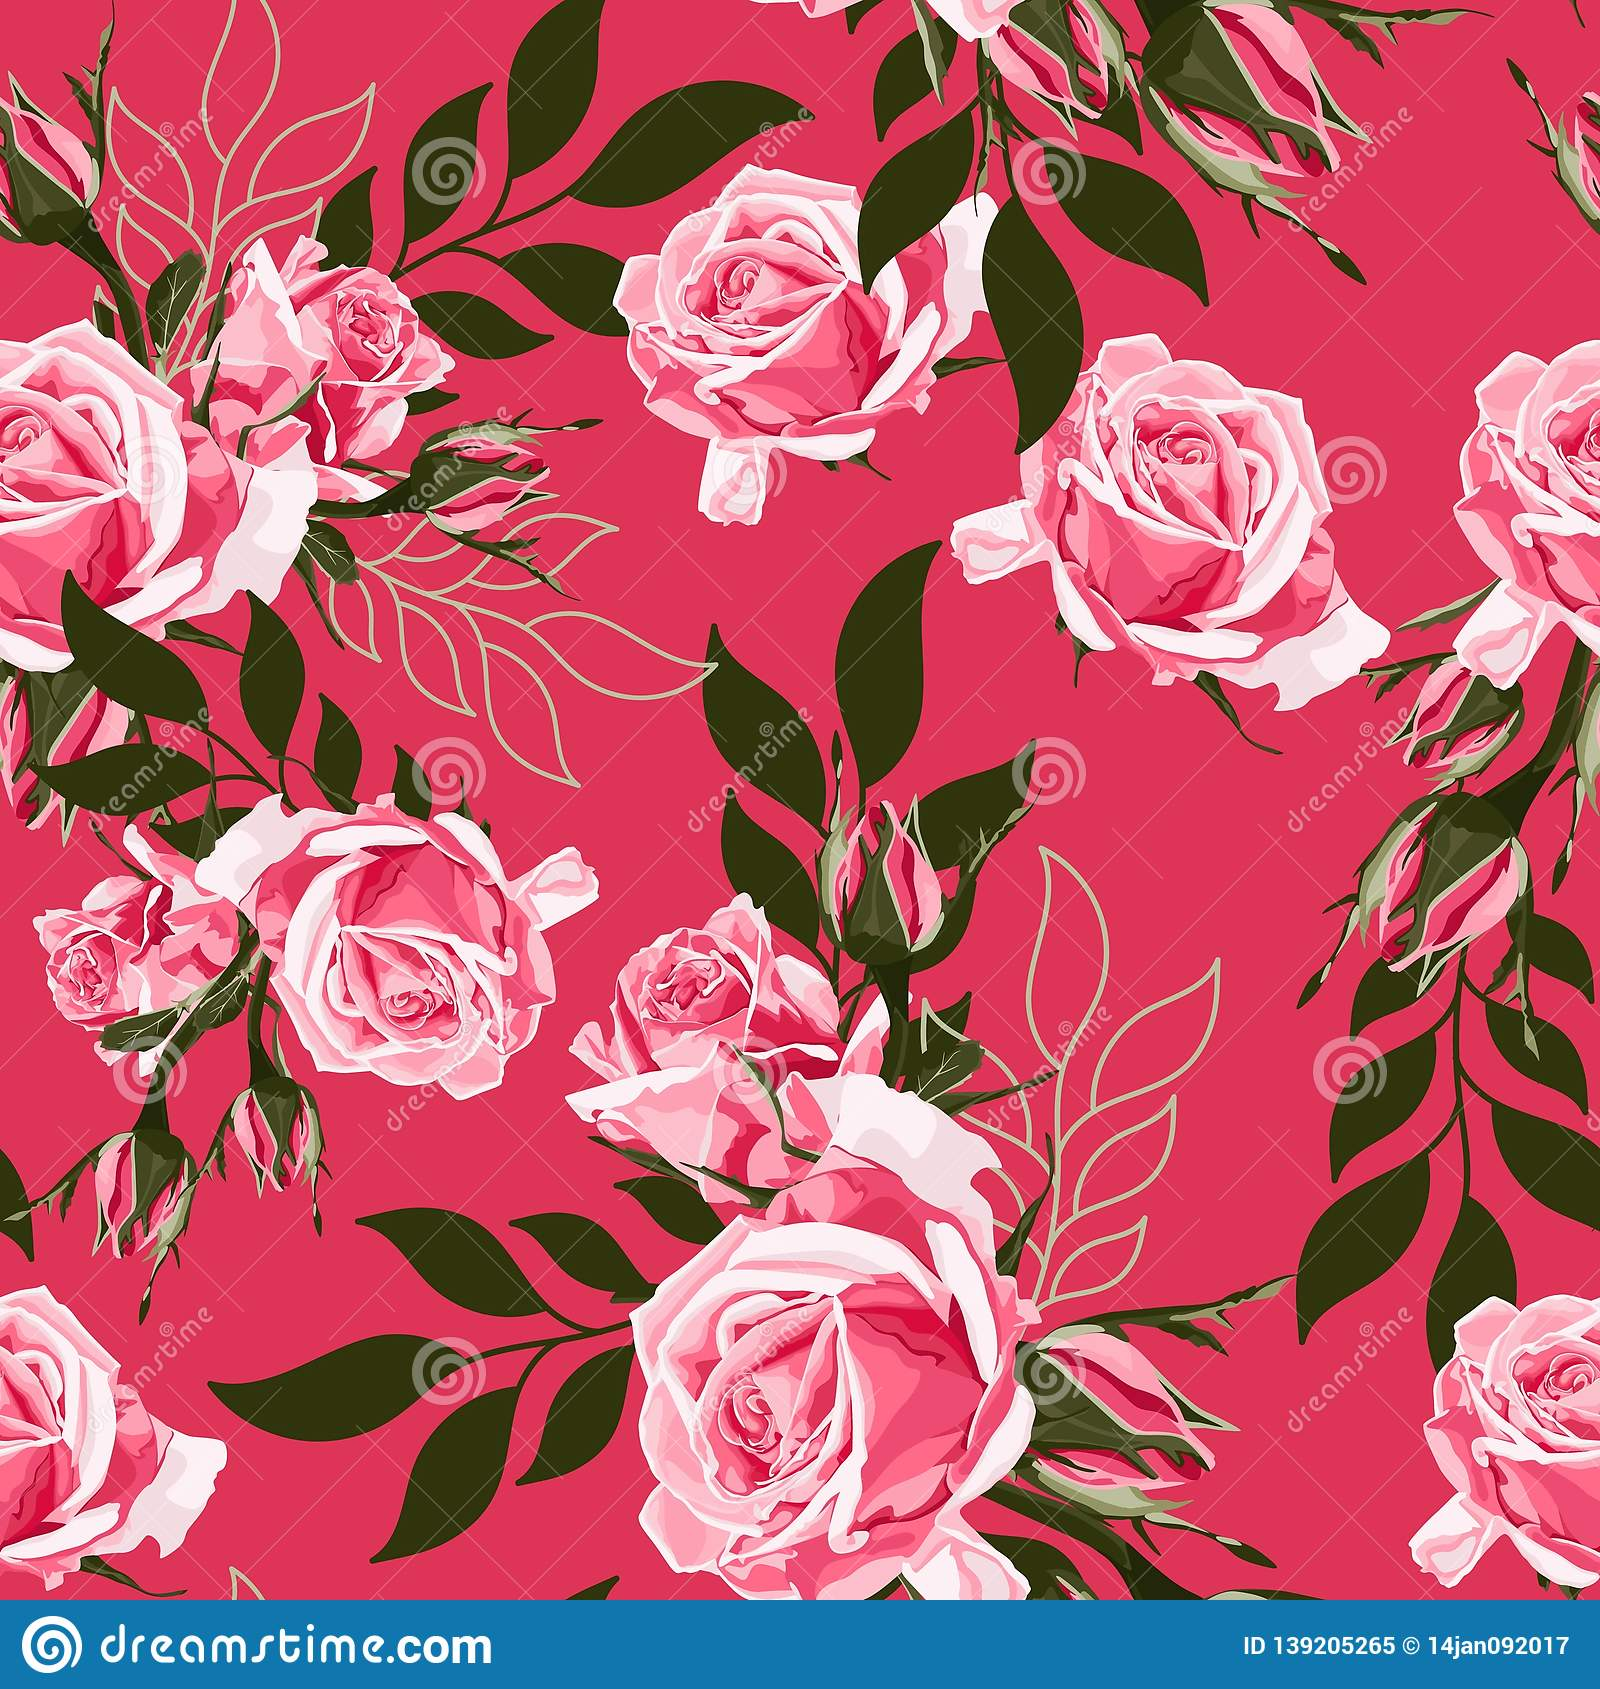 Pink Rose And Simple Leaves Floral Botanical Flower Seamless